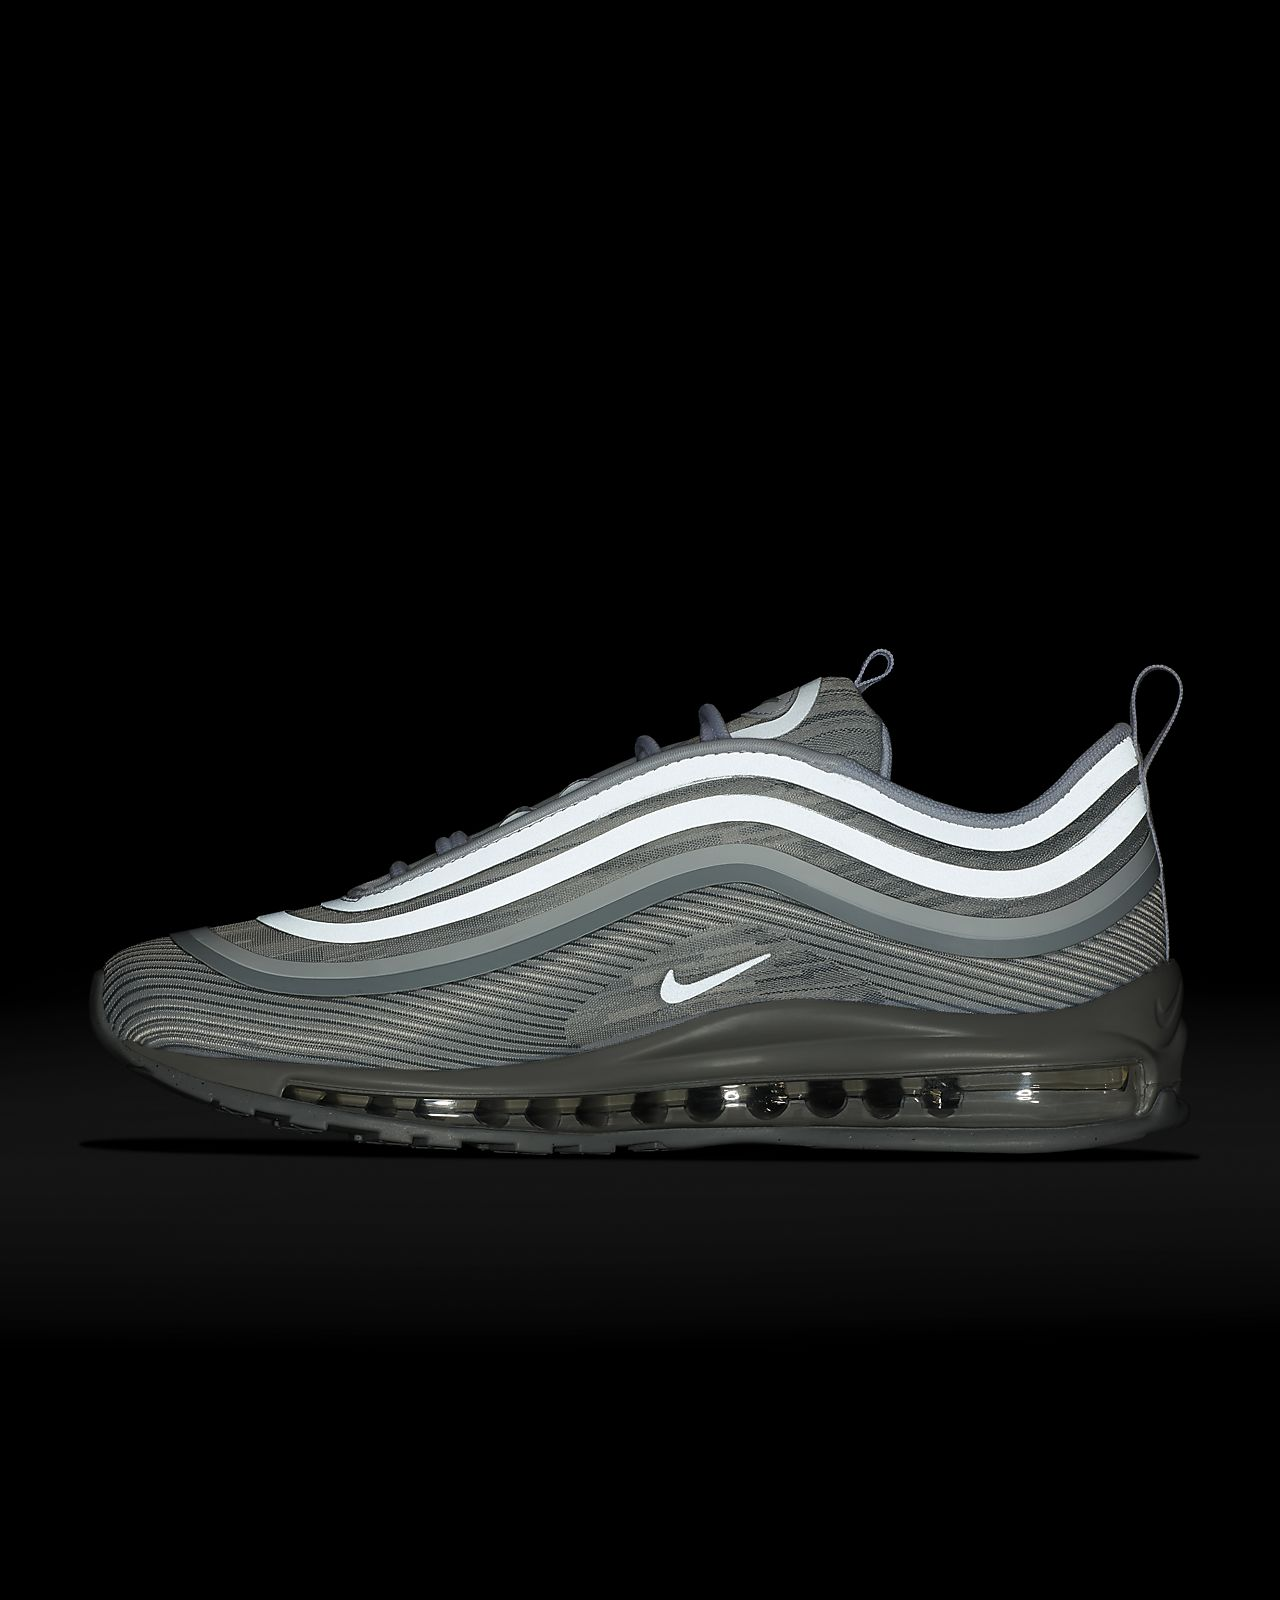 4a7c8d8de6547a Nike Air Max 97 Ultra  17 Men s Shoe. Nike.com CA